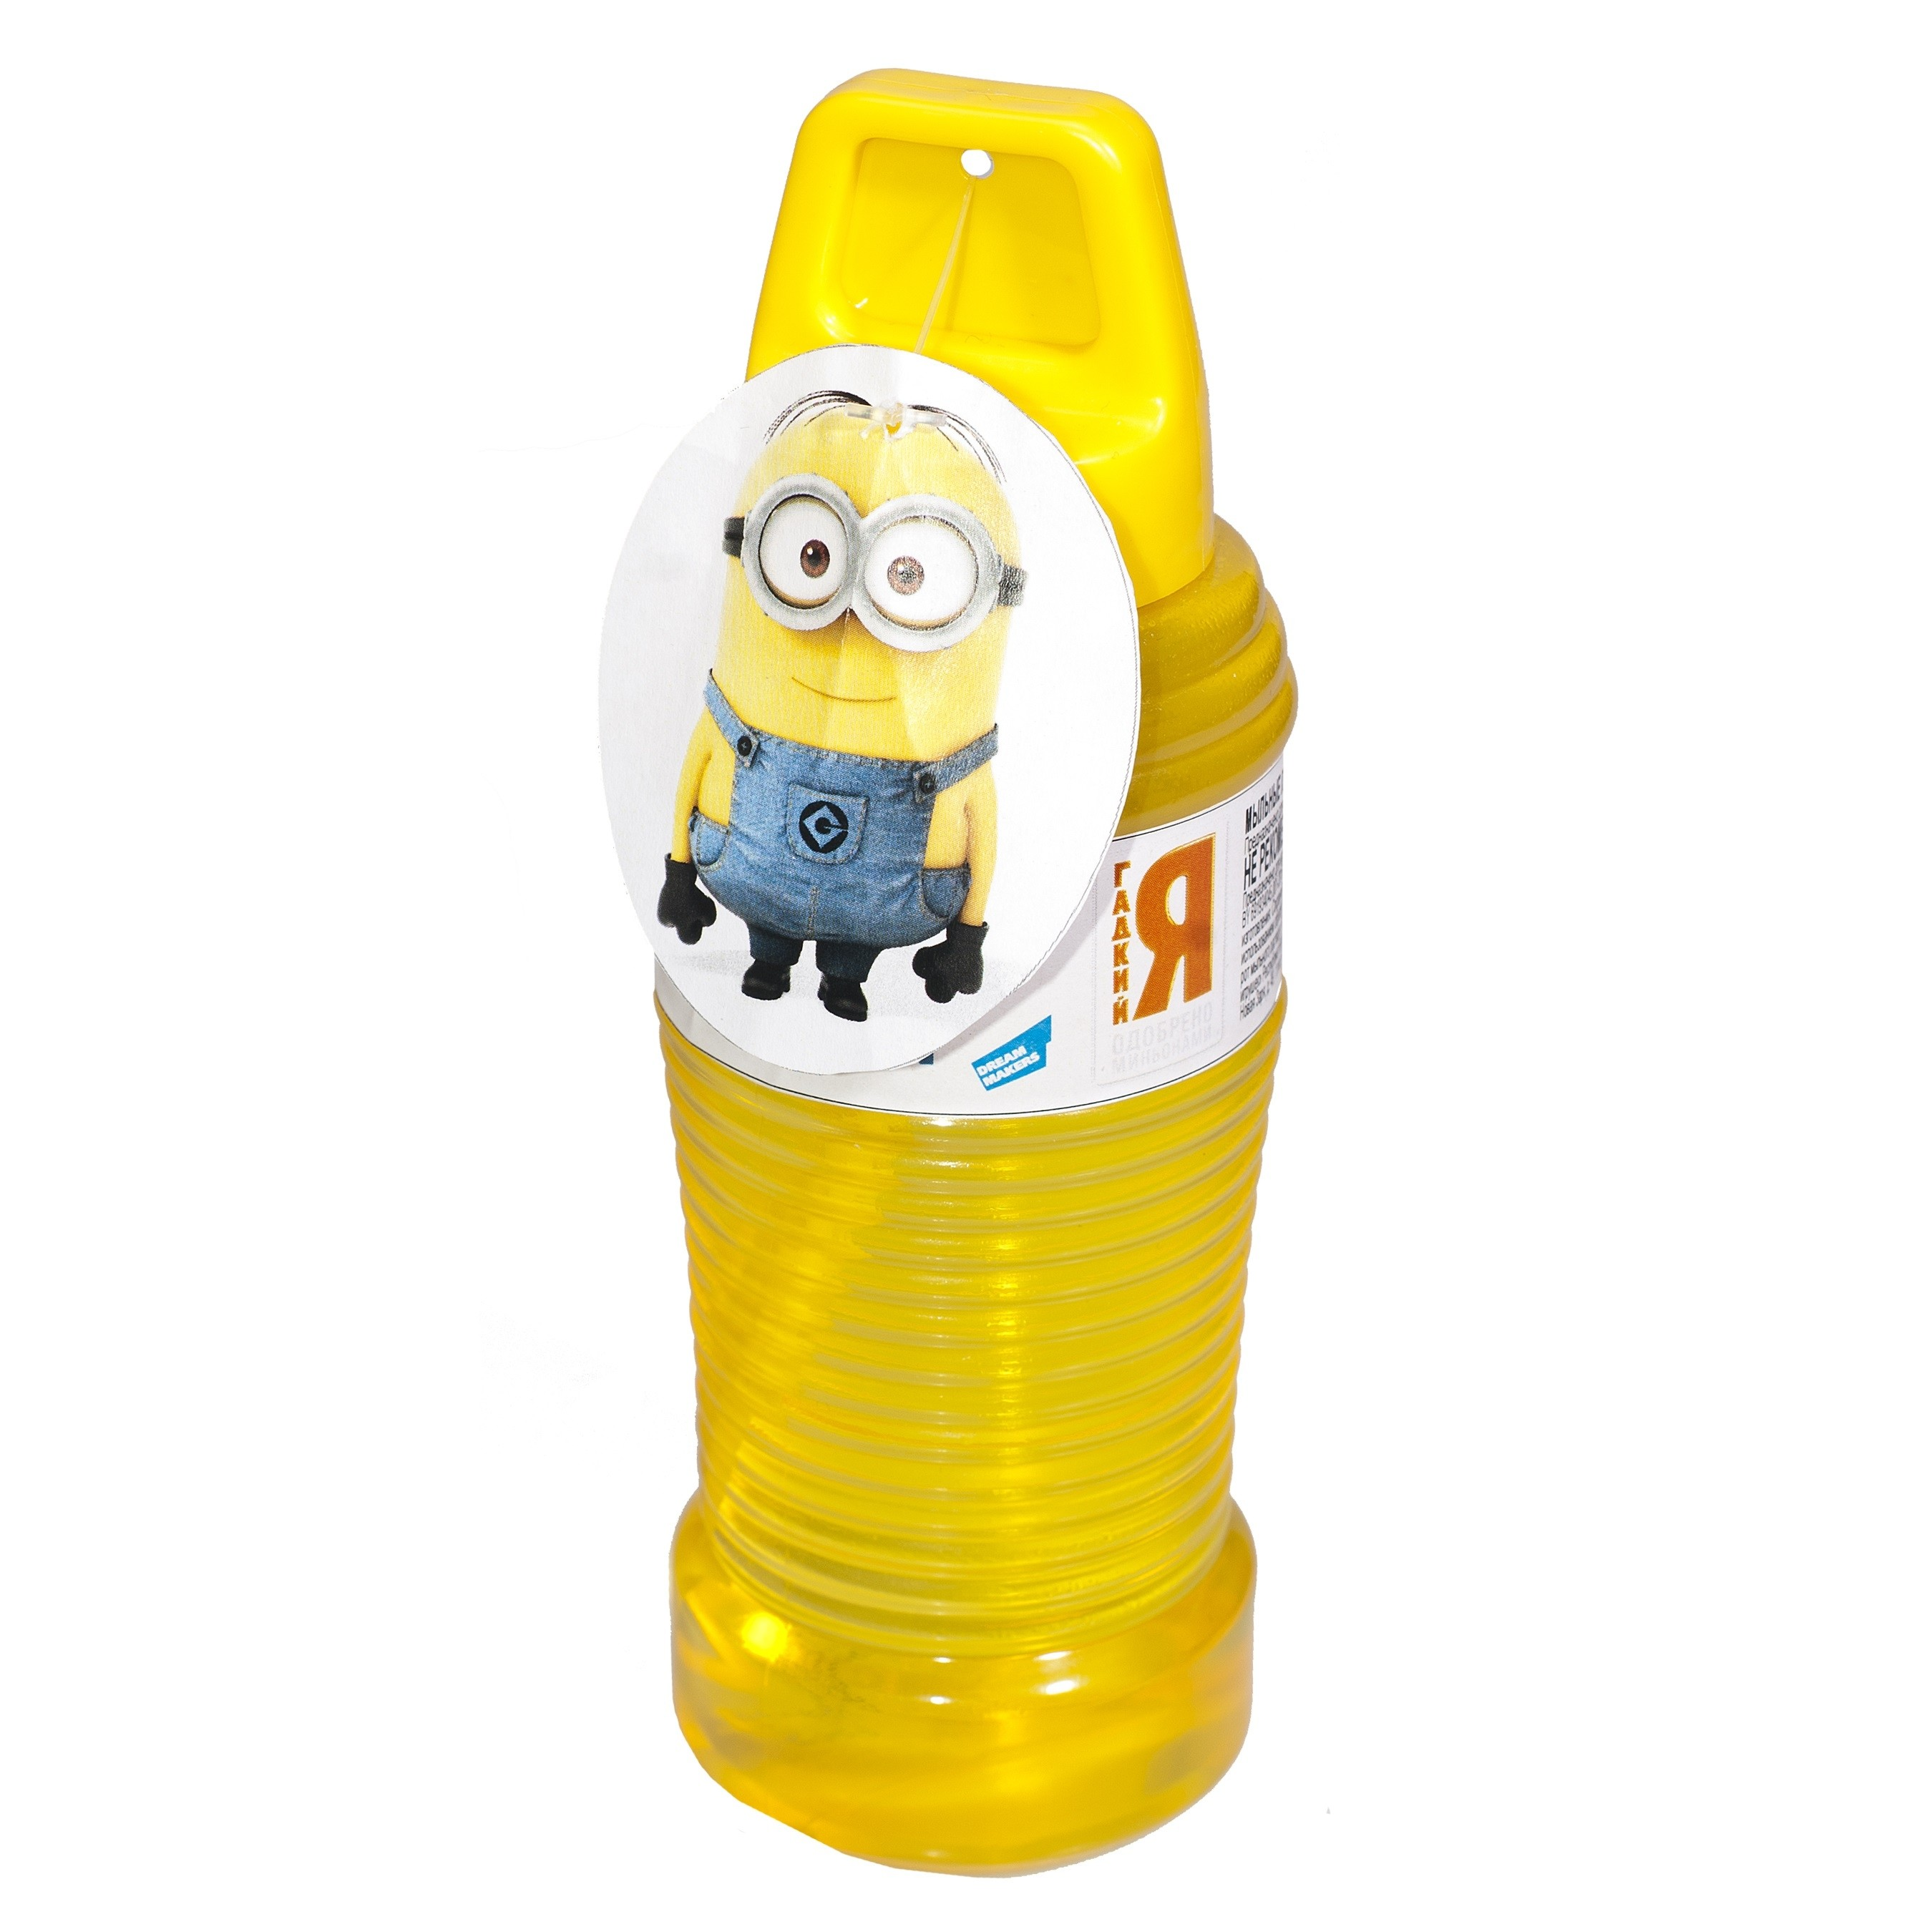 Мыльные пузыри Despicable Me Мыльные пузыри Despicable Me 240 мл 1pc luxury silver clip black or blue fountain pen high end pimio 912 iraurita ink gift writing pens with an original gift box